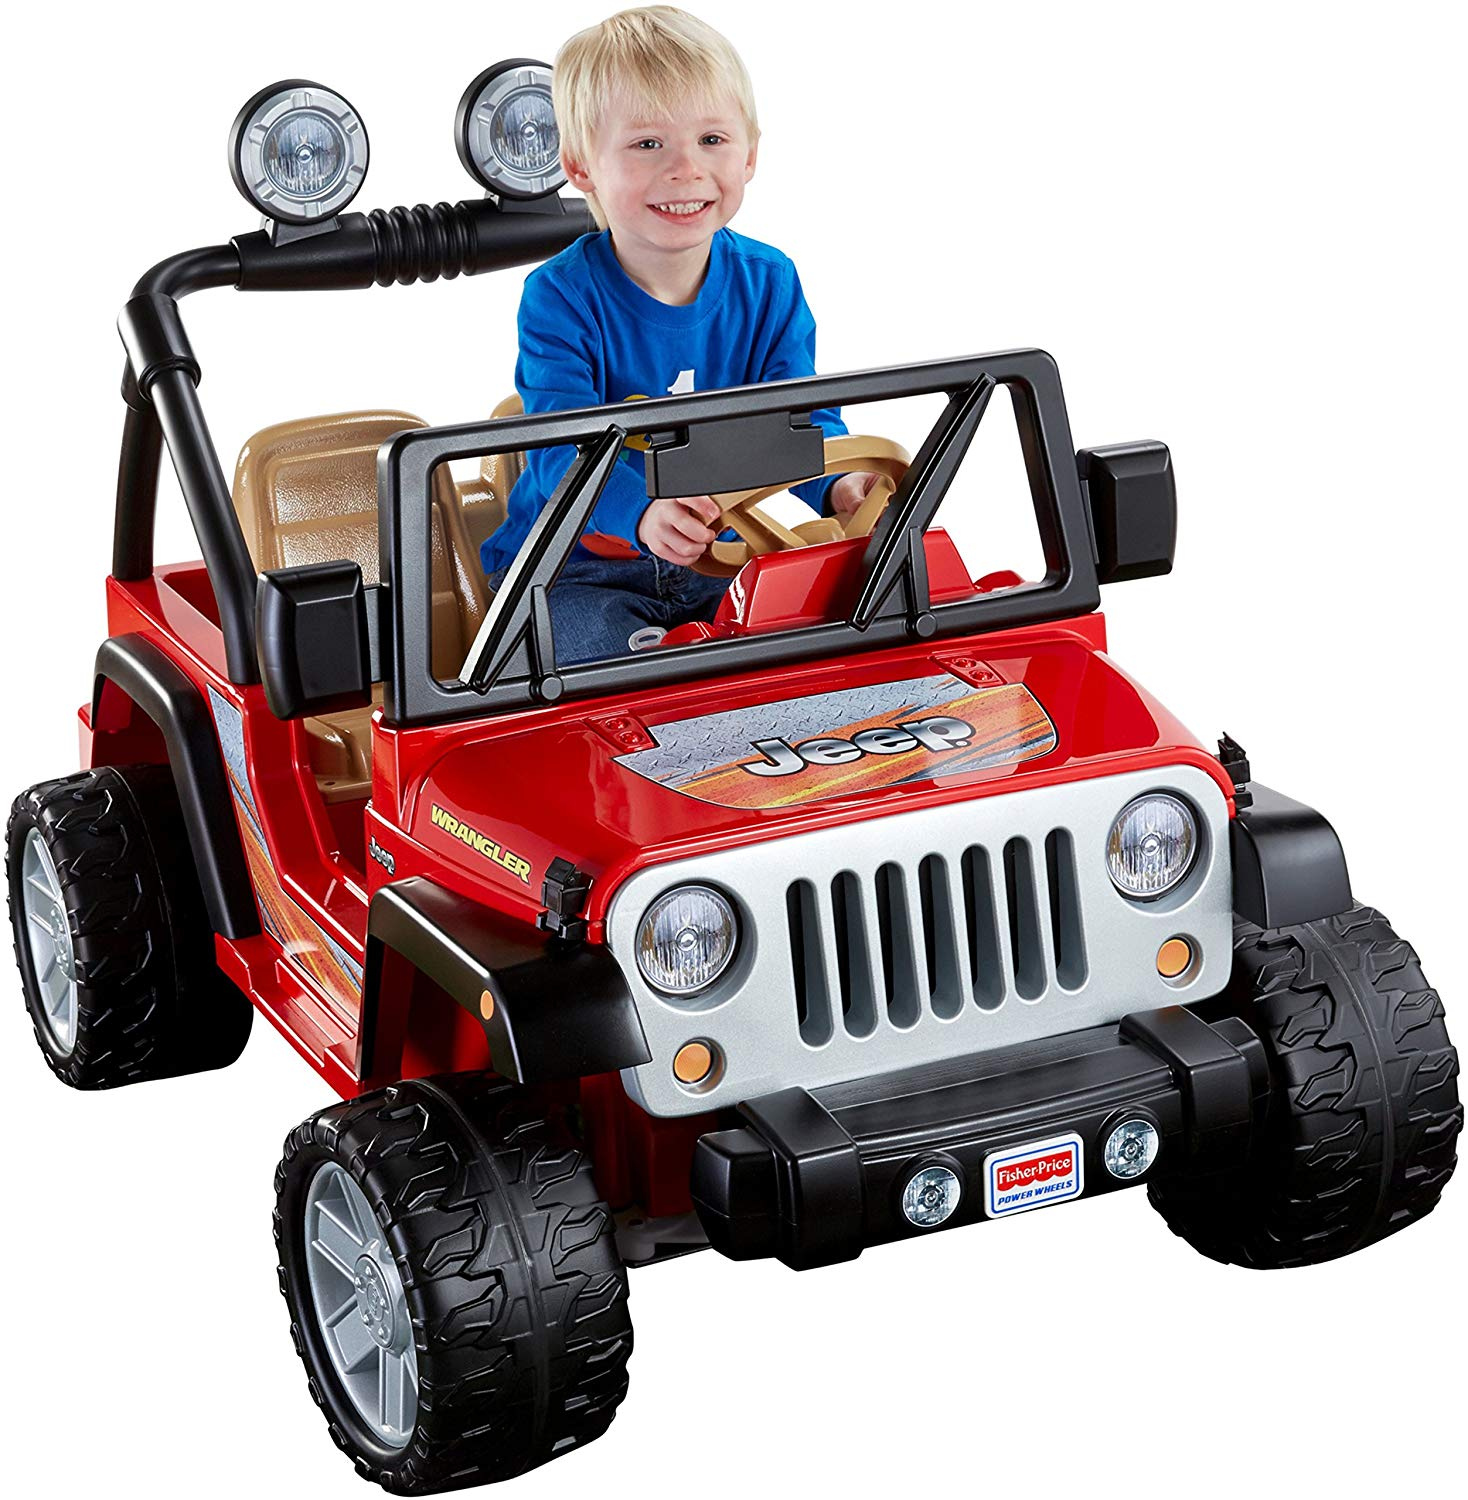 Motorized Ride On toys Lovely Power Wheels Jeep Wrangler Red toys Games